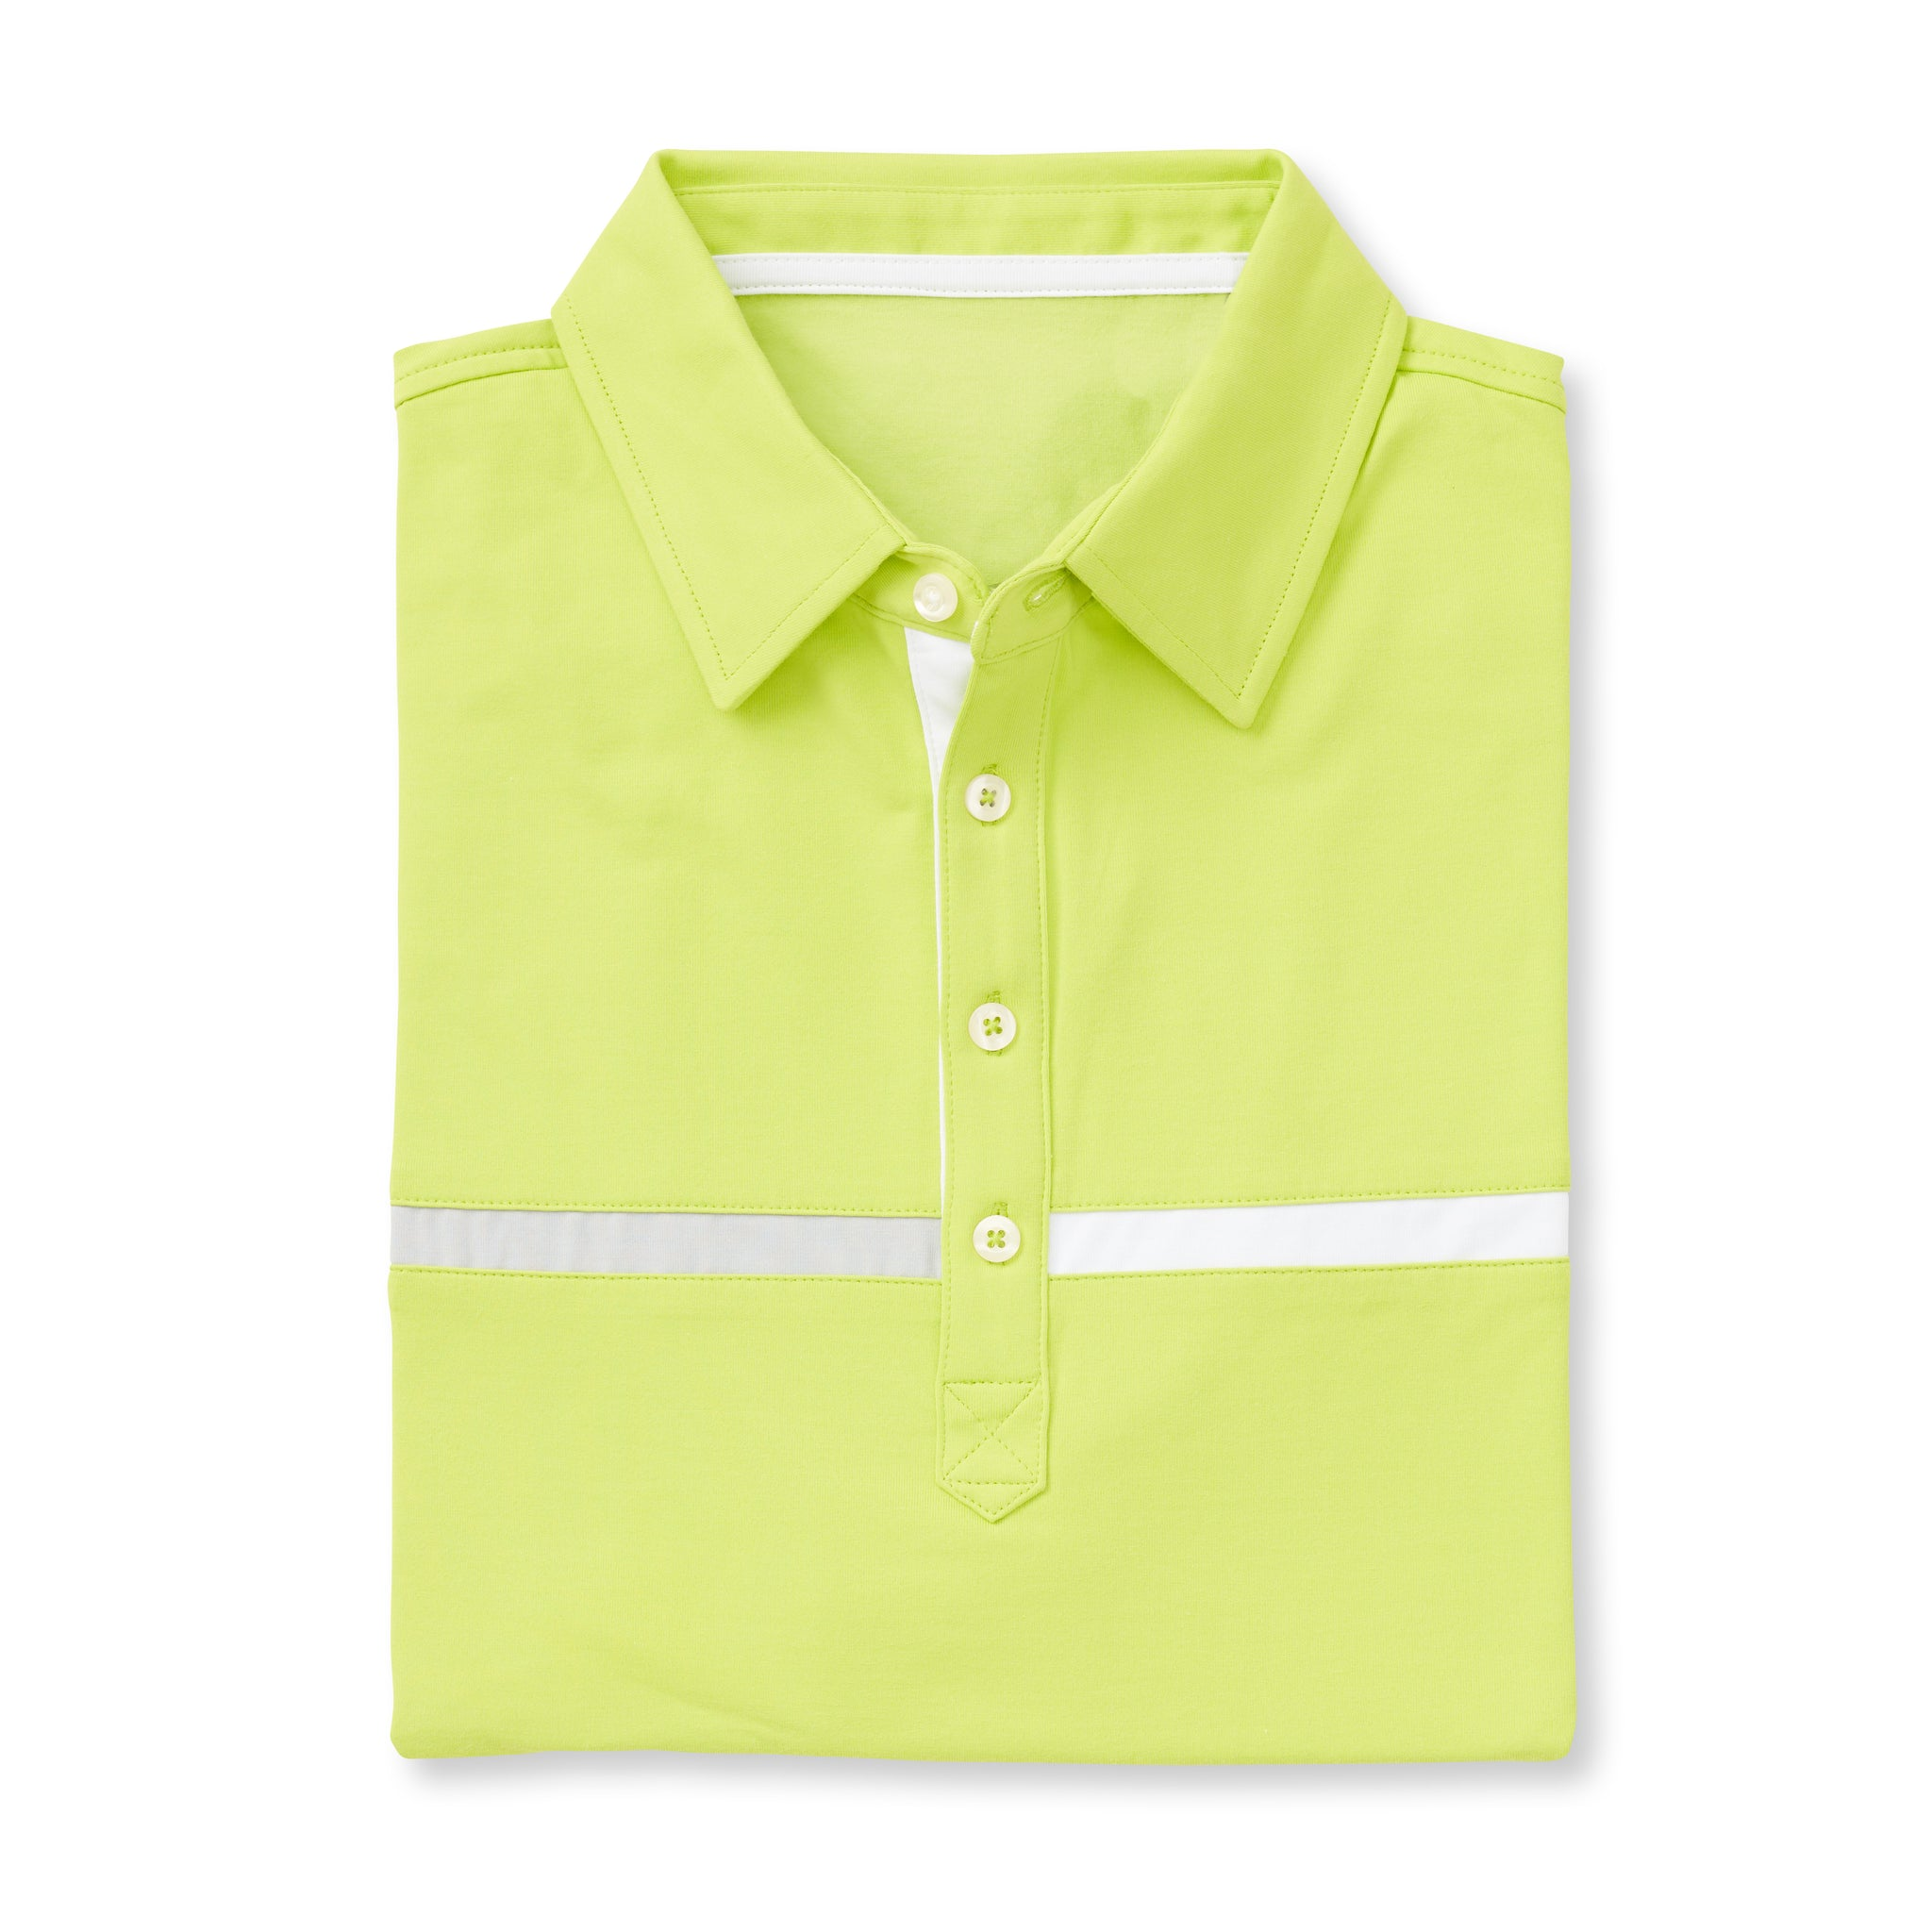 LUXTEC Champions Color Block Short Sleeve Polo - Lime IS72420